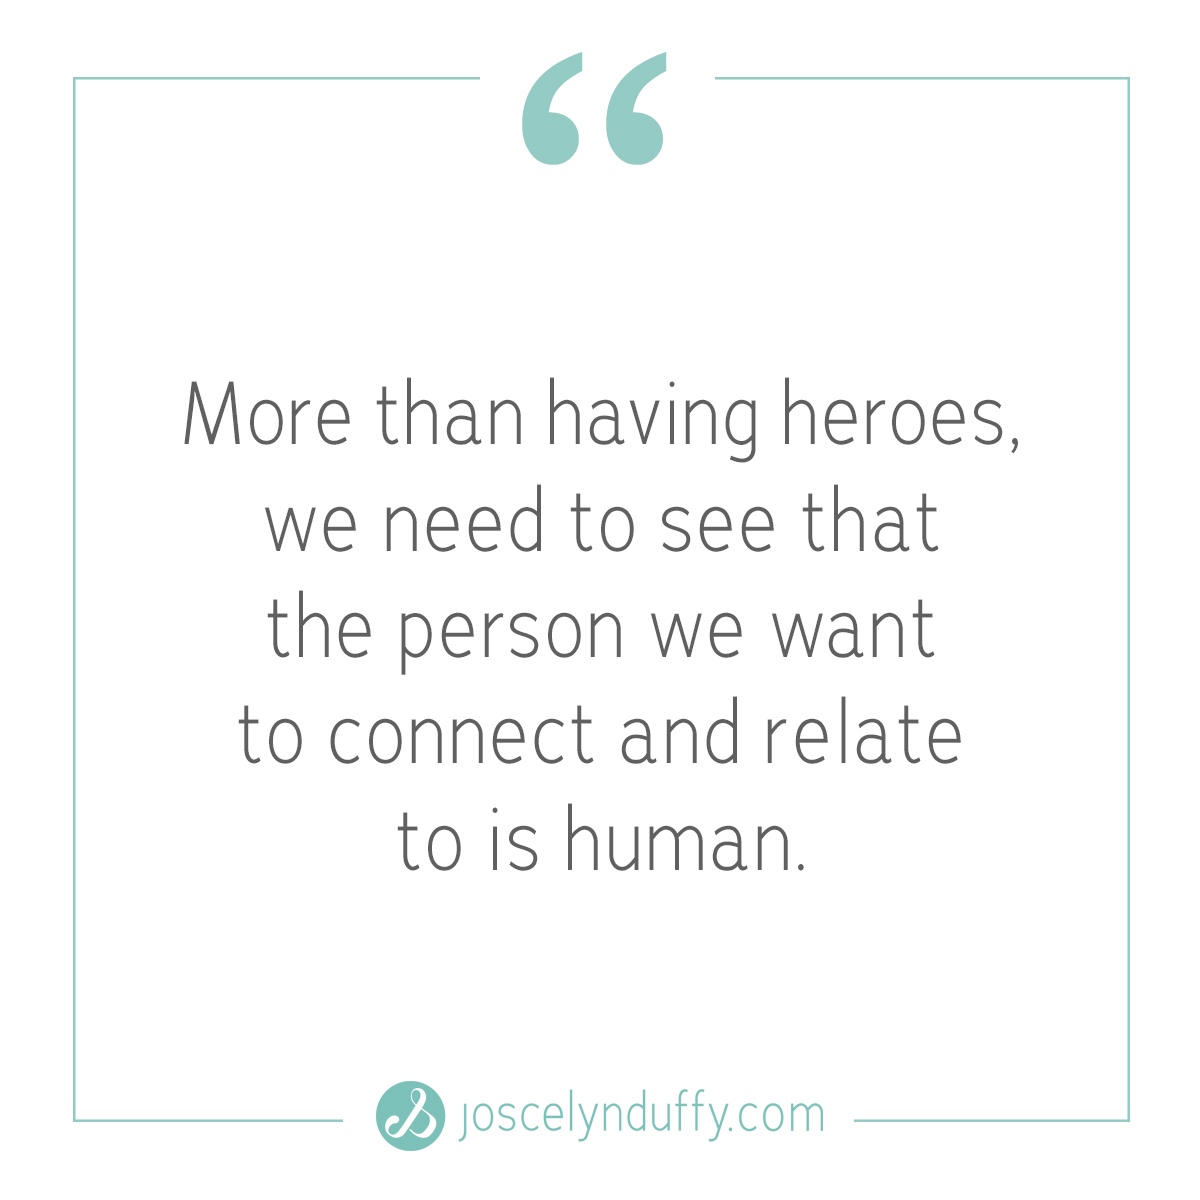 Joscelyn Duffy_quote_More than having heroes we need to see that the person we want to relate to is human_Feb13